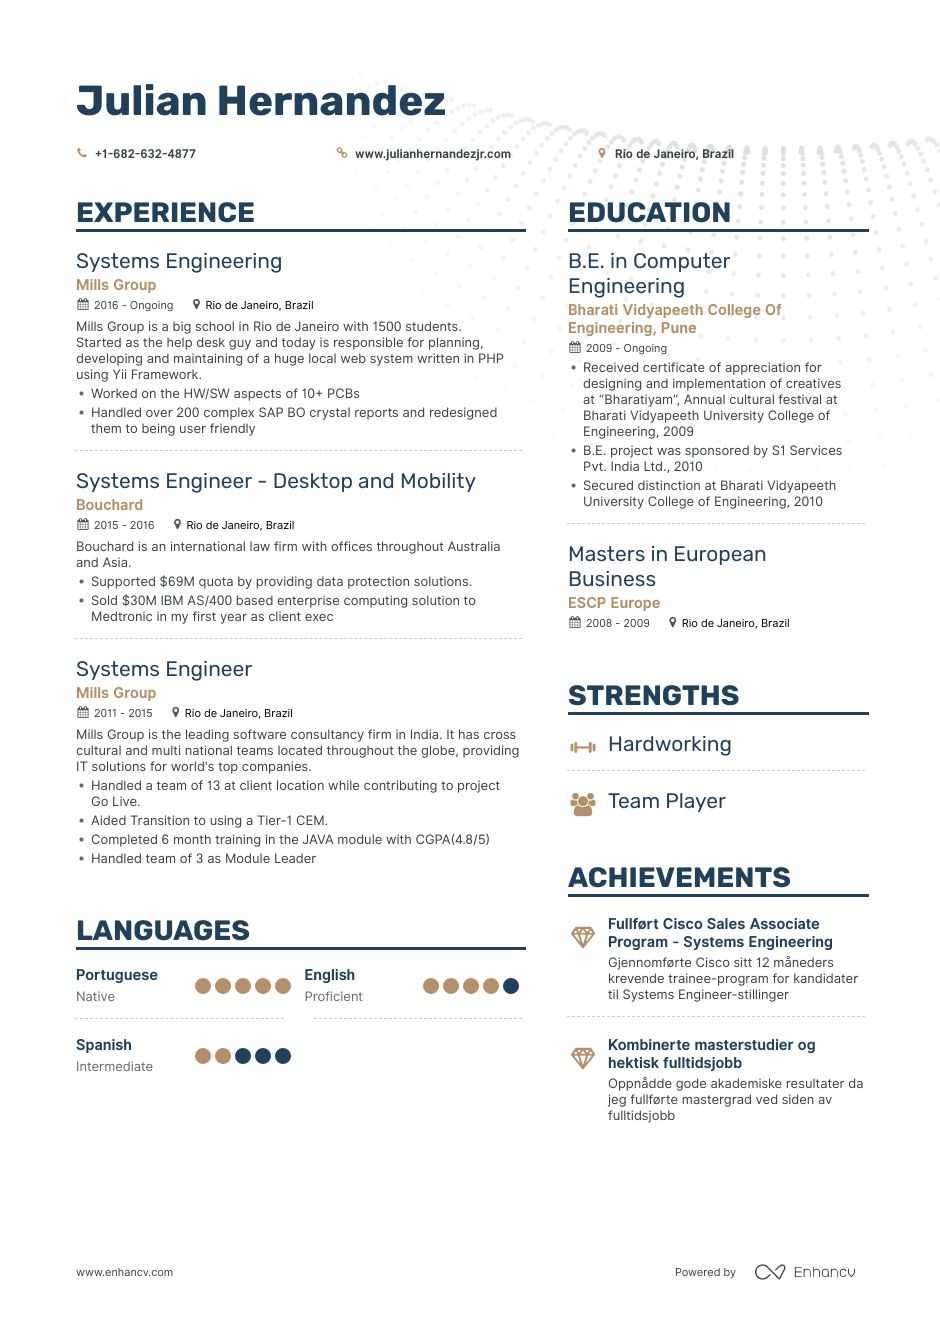 systems engineer resume examples pro tips featured enhancv experience sample for print Resume Experience Engineer Resume Sample